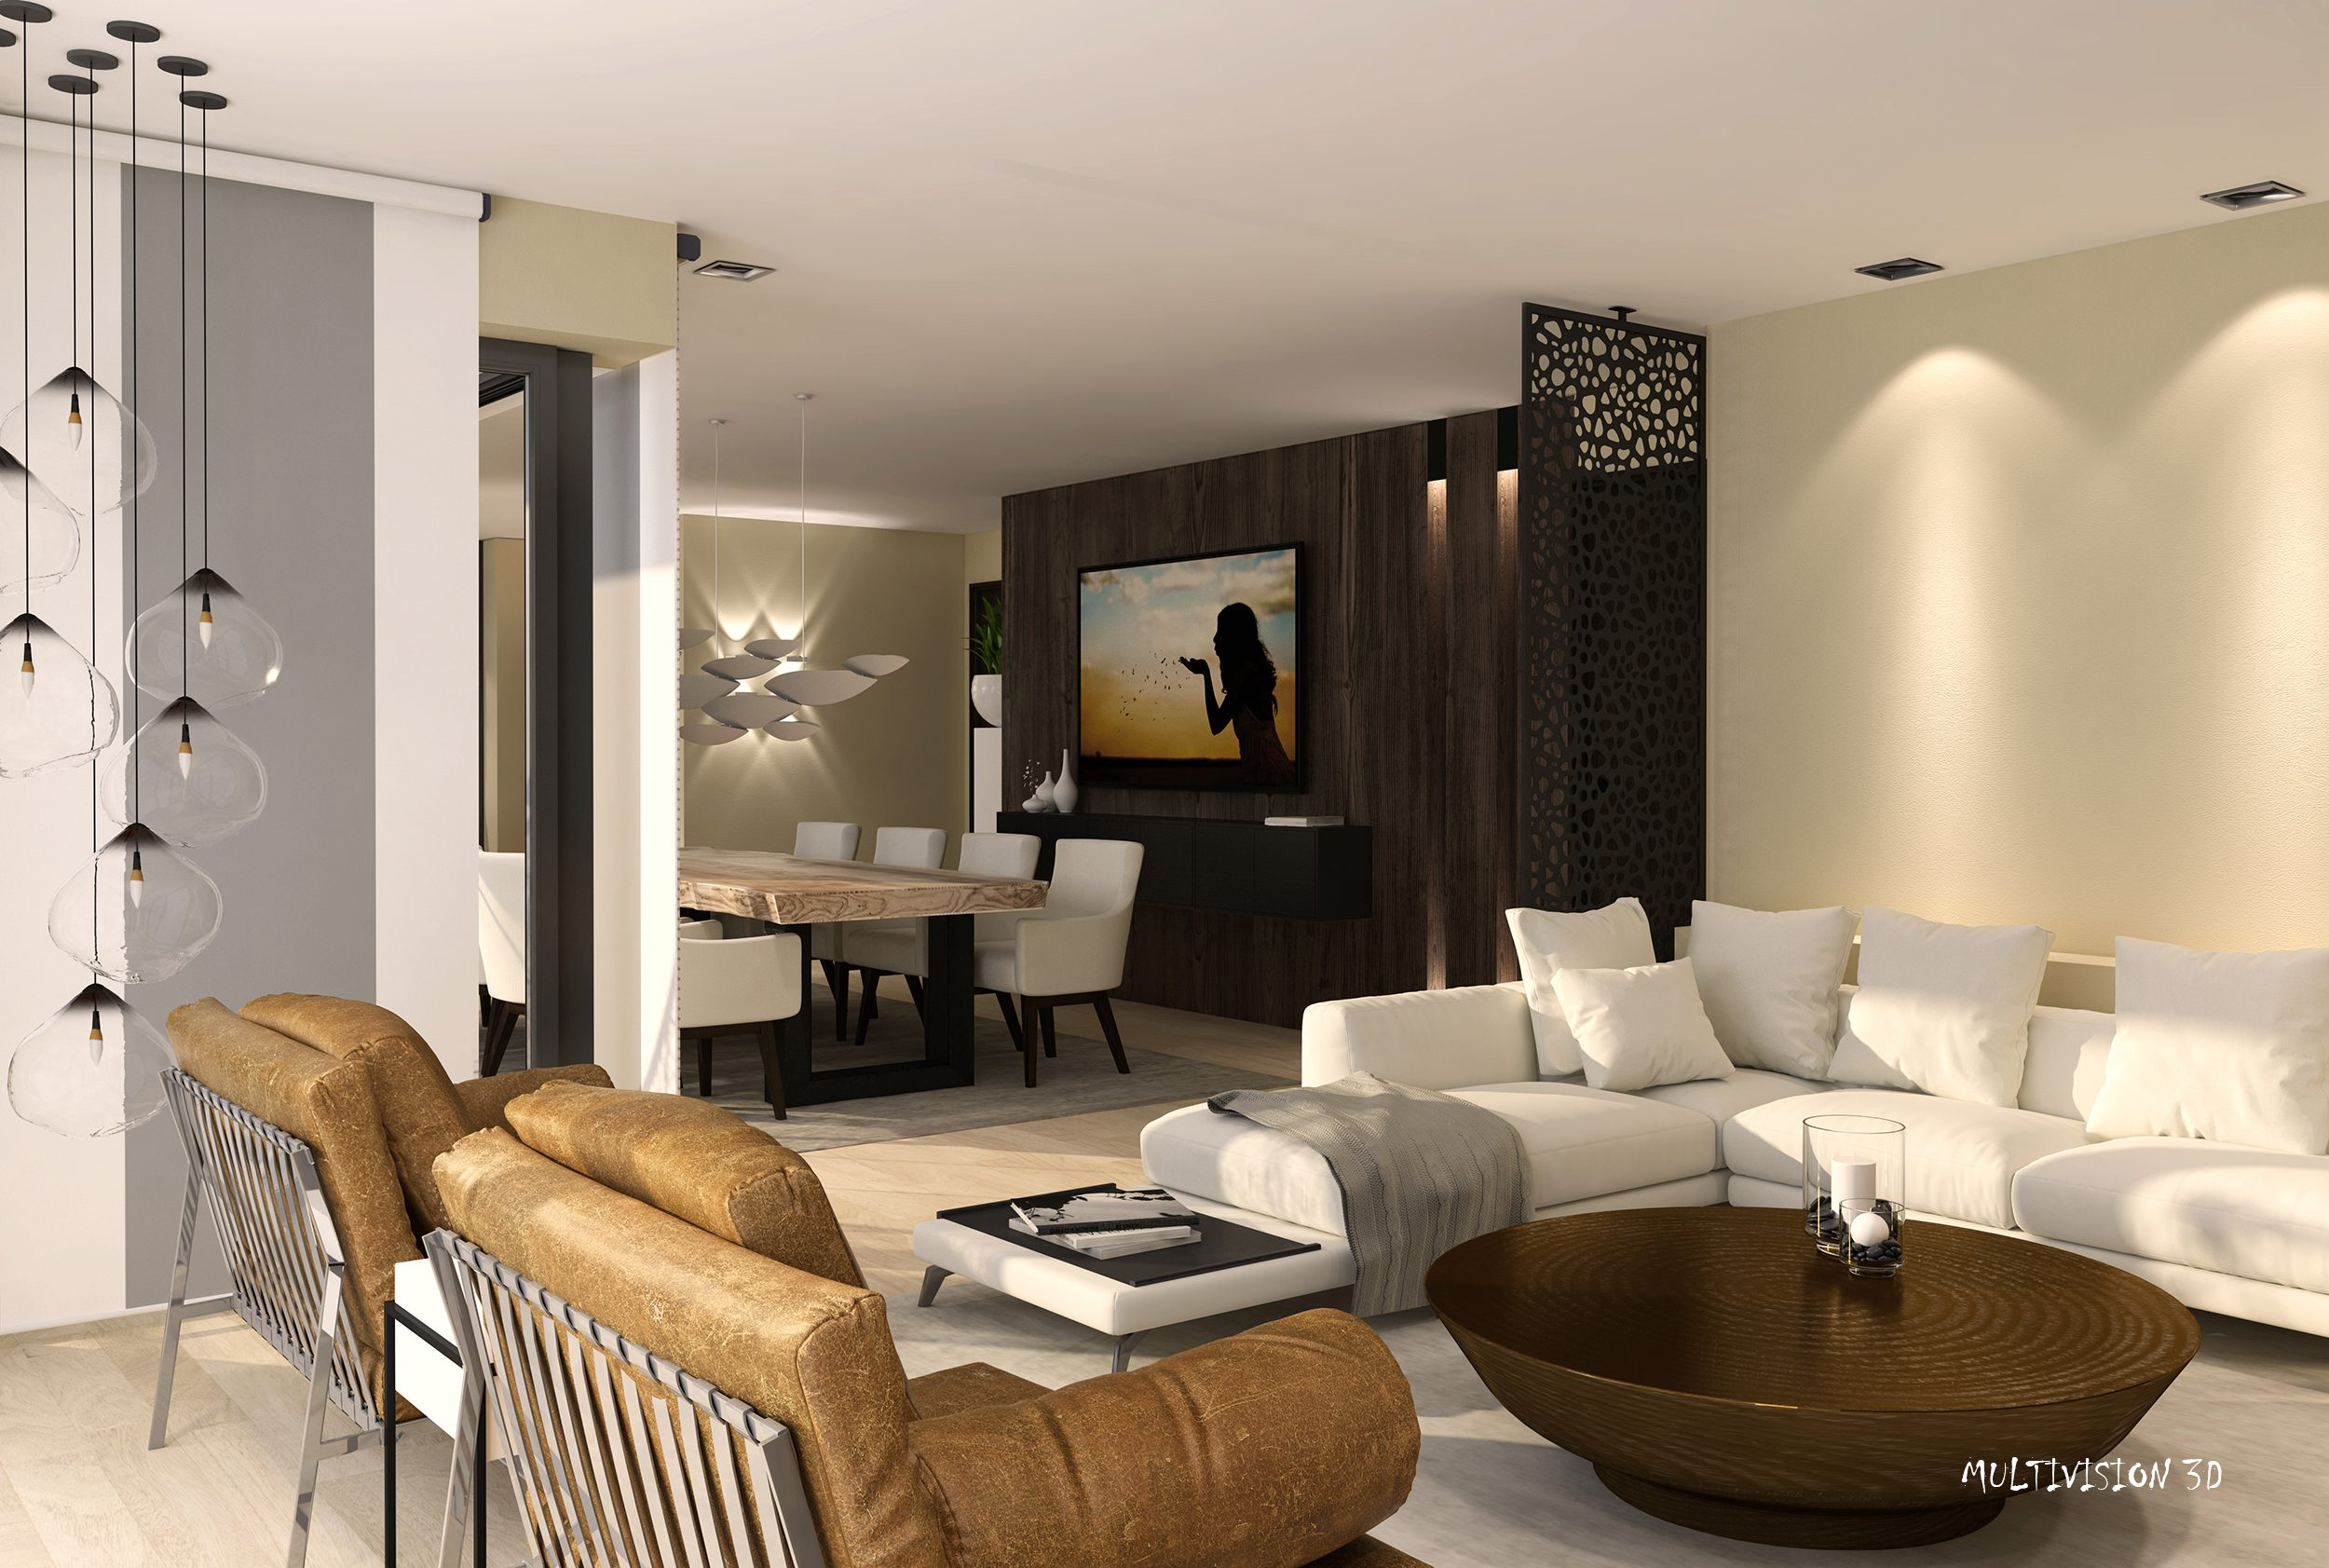 Multivision 3d artist impression interieur project Lier – woonkamer ...